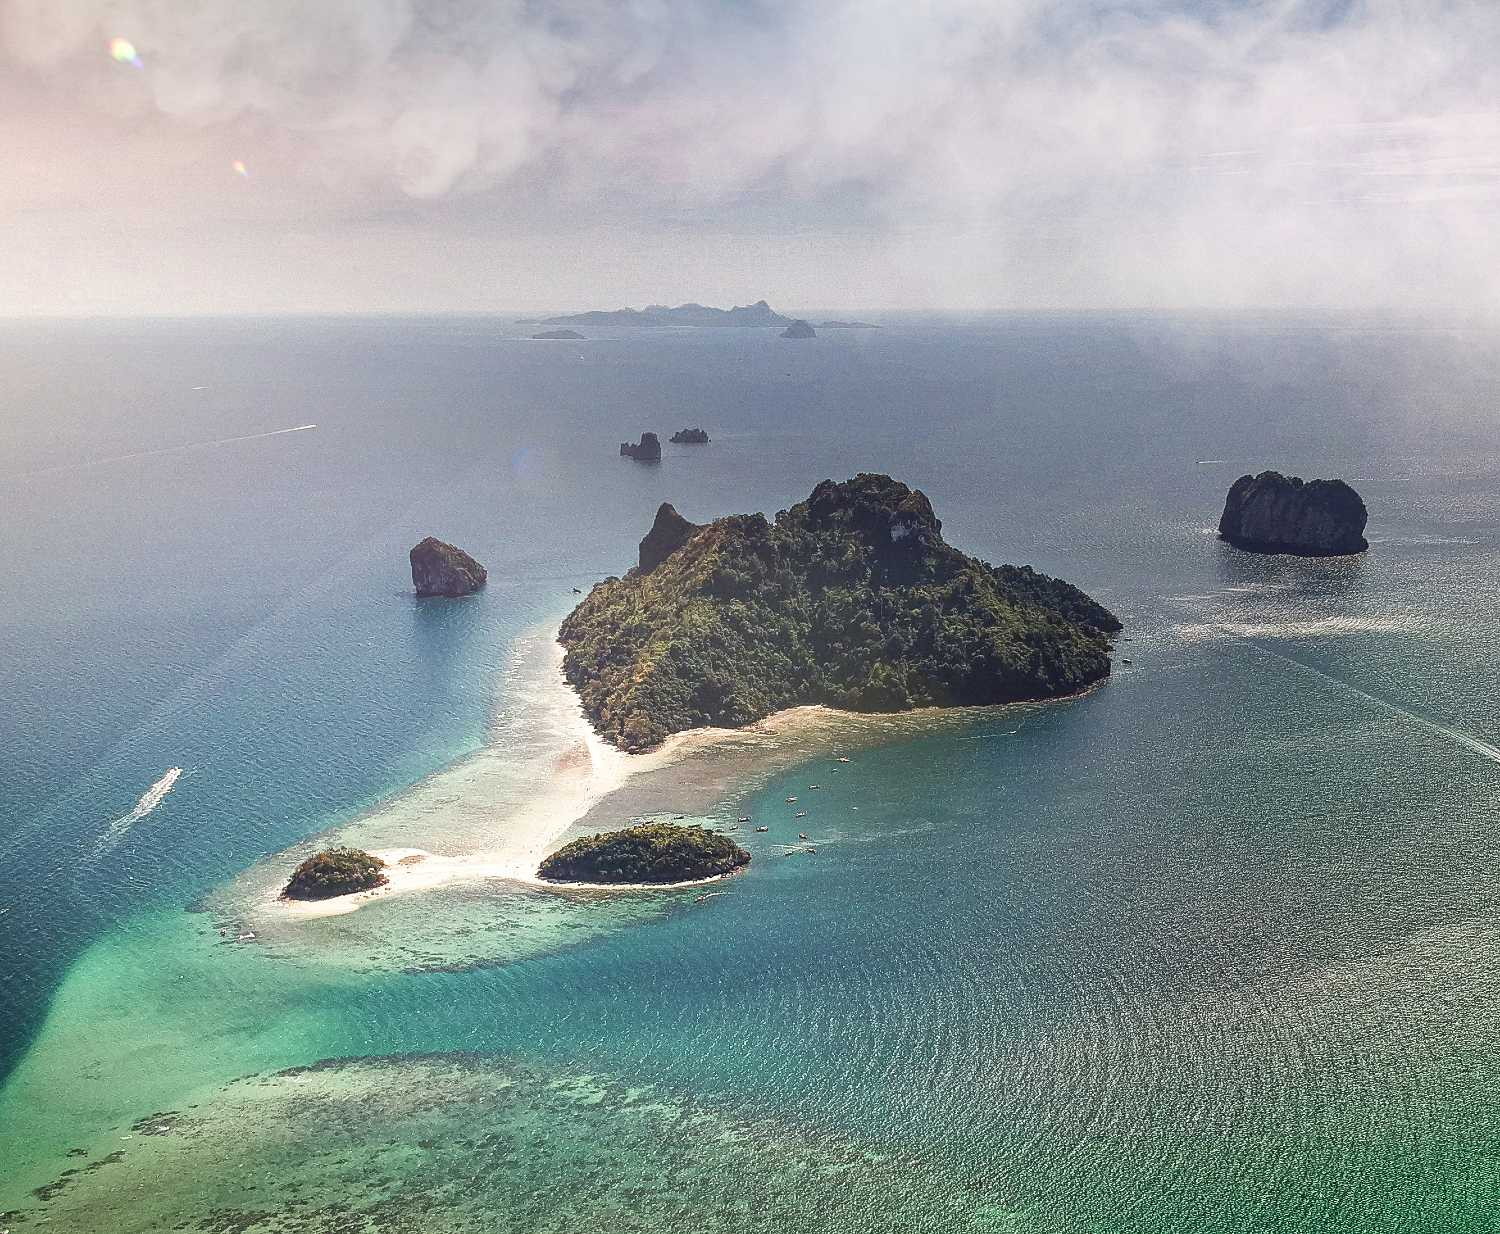 Tup Island in Thailand